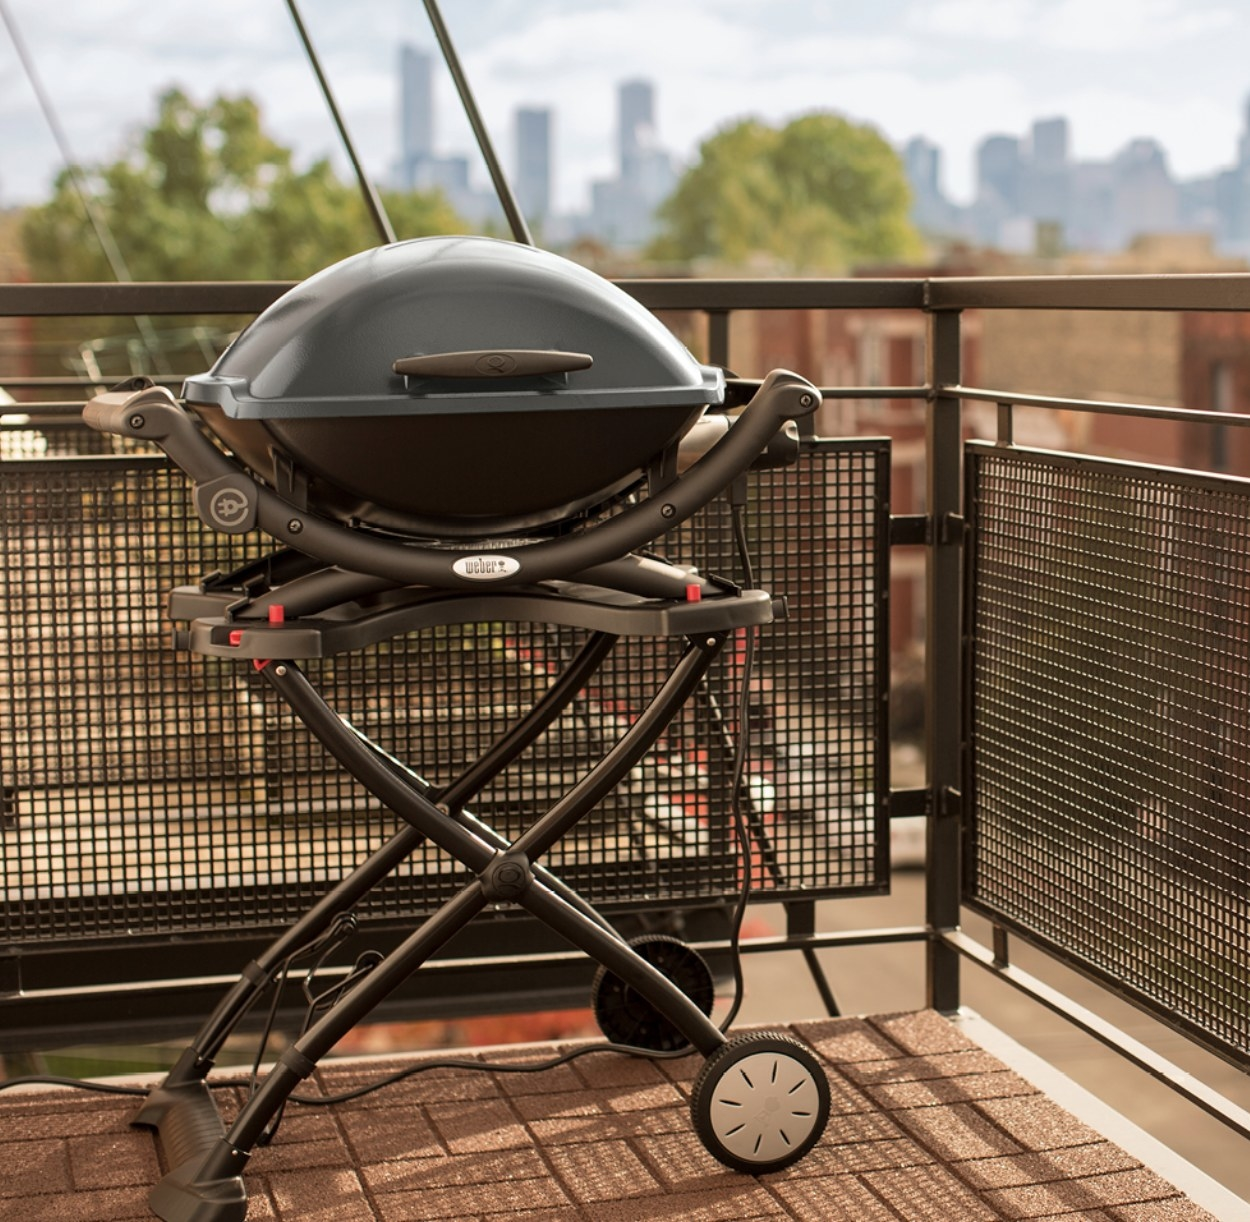 The electric grill